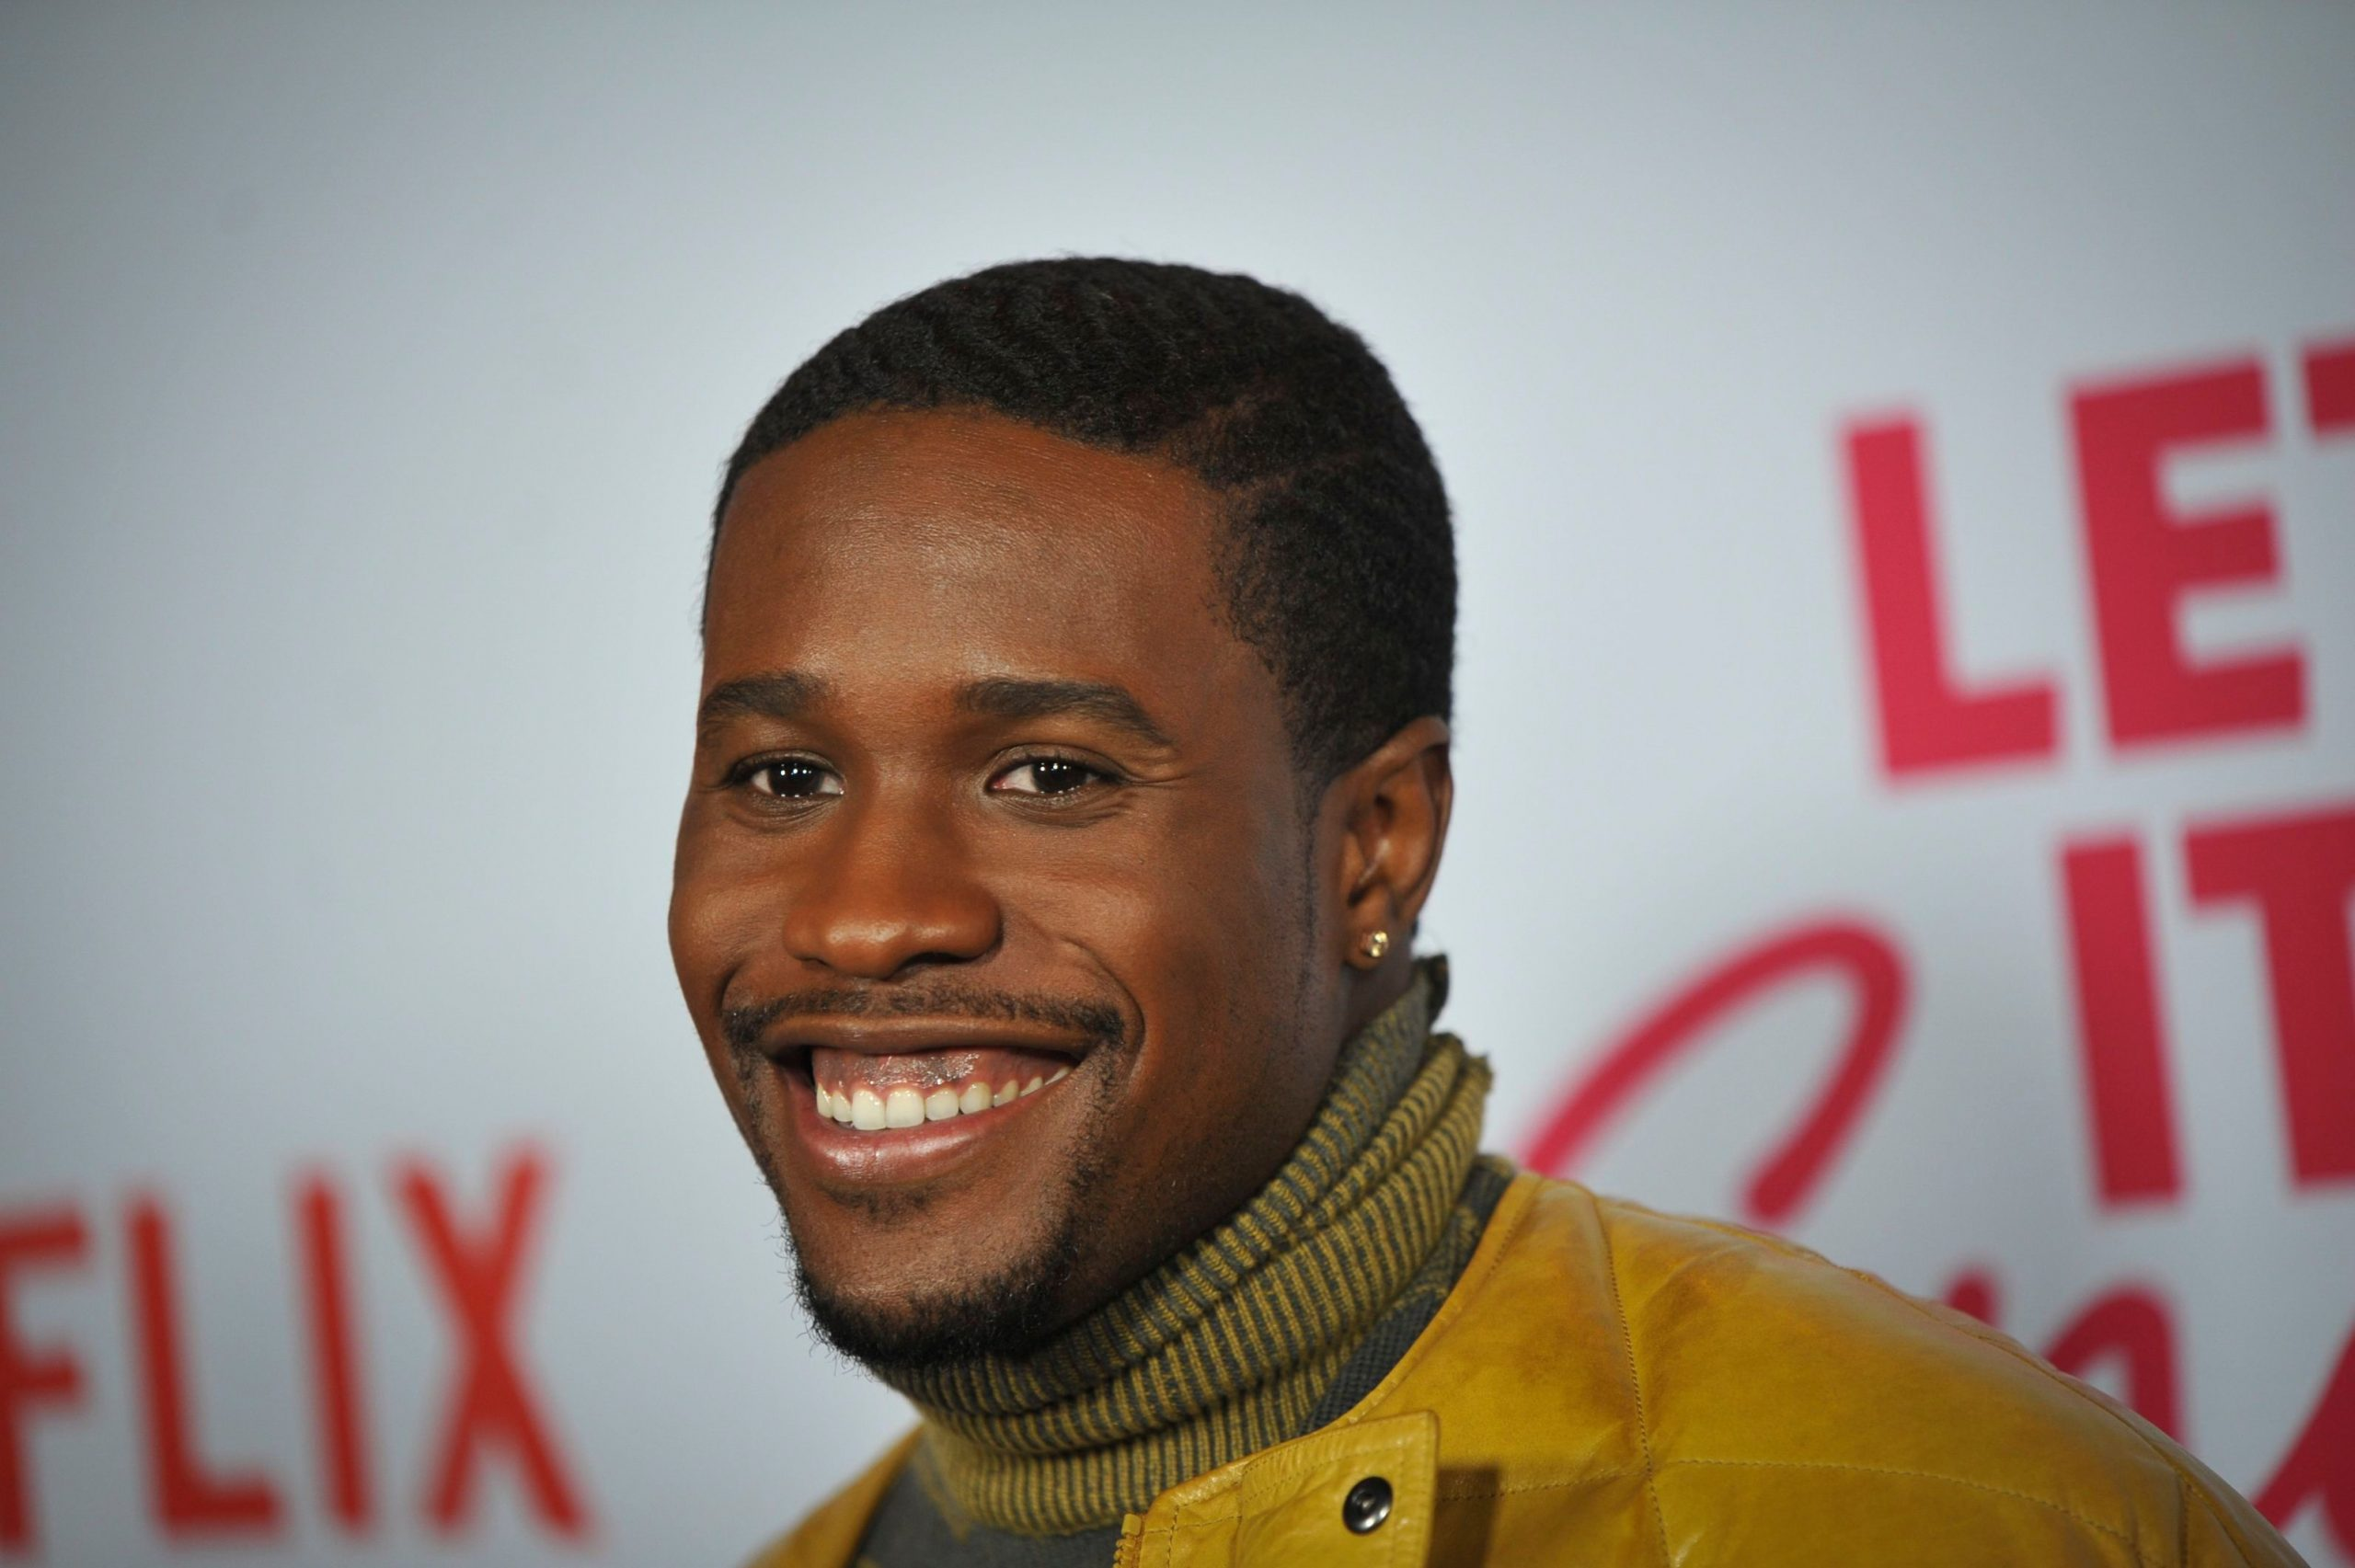 Shameik Moore Dragged for Suggesting Rosa Parks Should've Taken a Cab